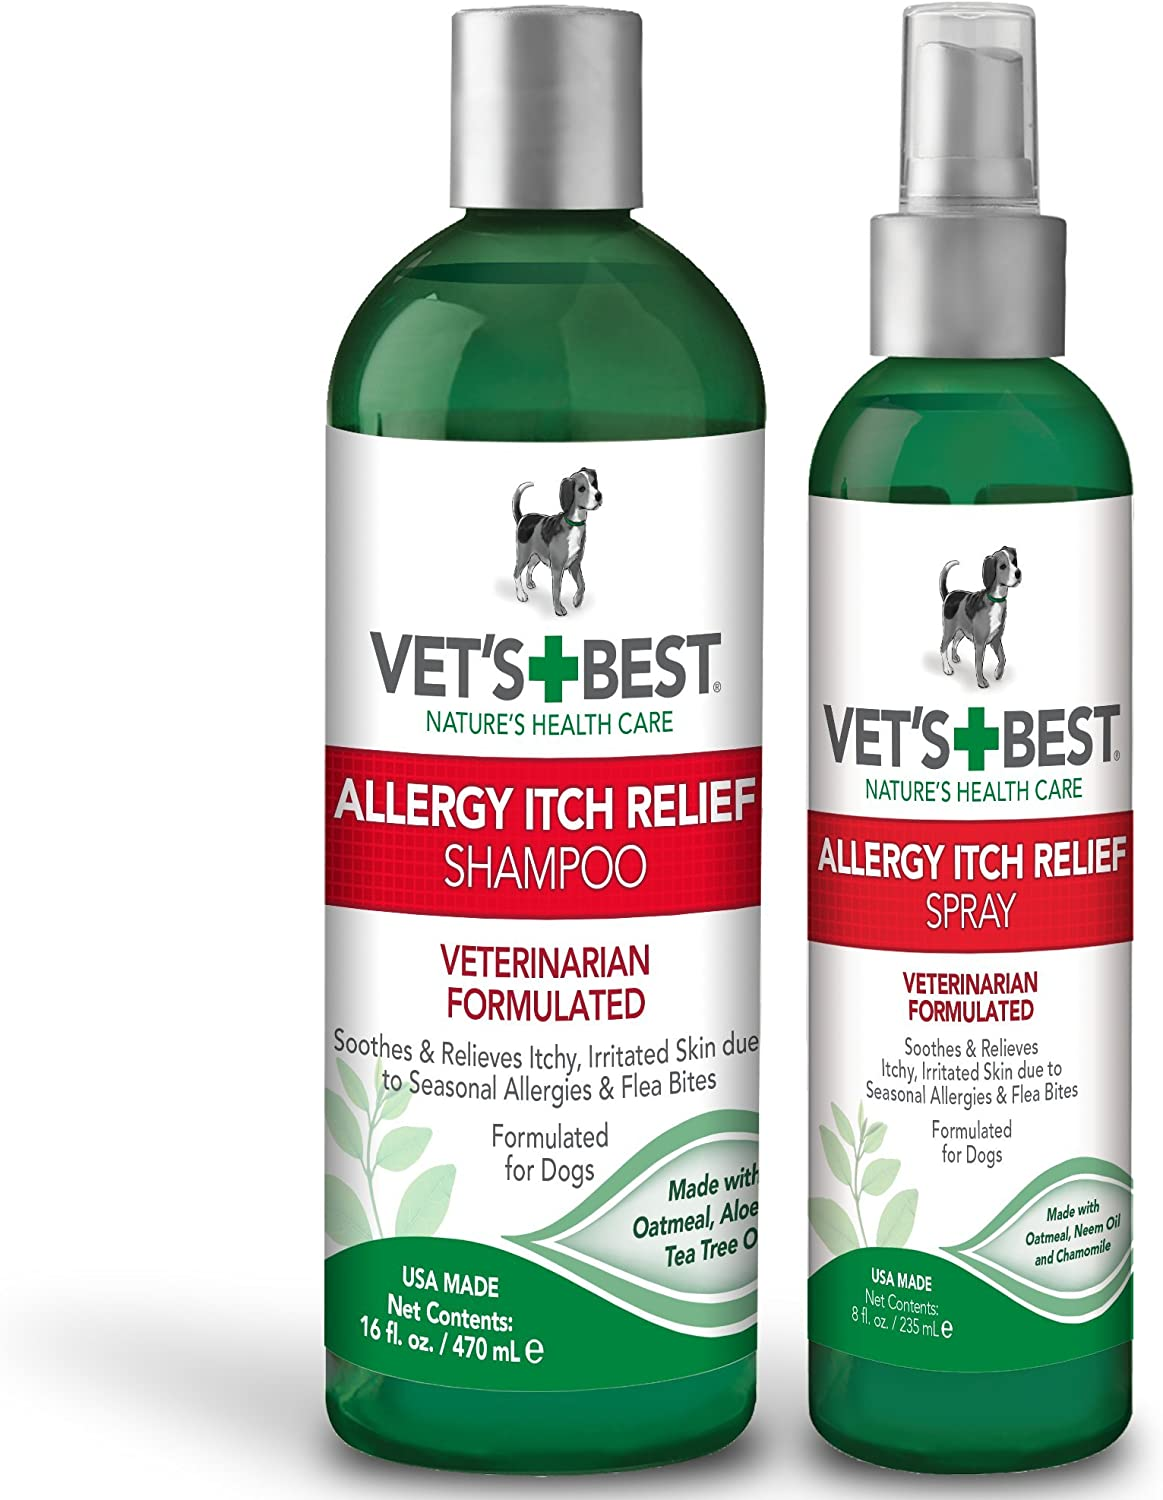 Vet's Best Allergy Itch Relief Dog Shampoo, 16 ounce and Allergy Itch Relief Spray for Dogs, 8 ounce